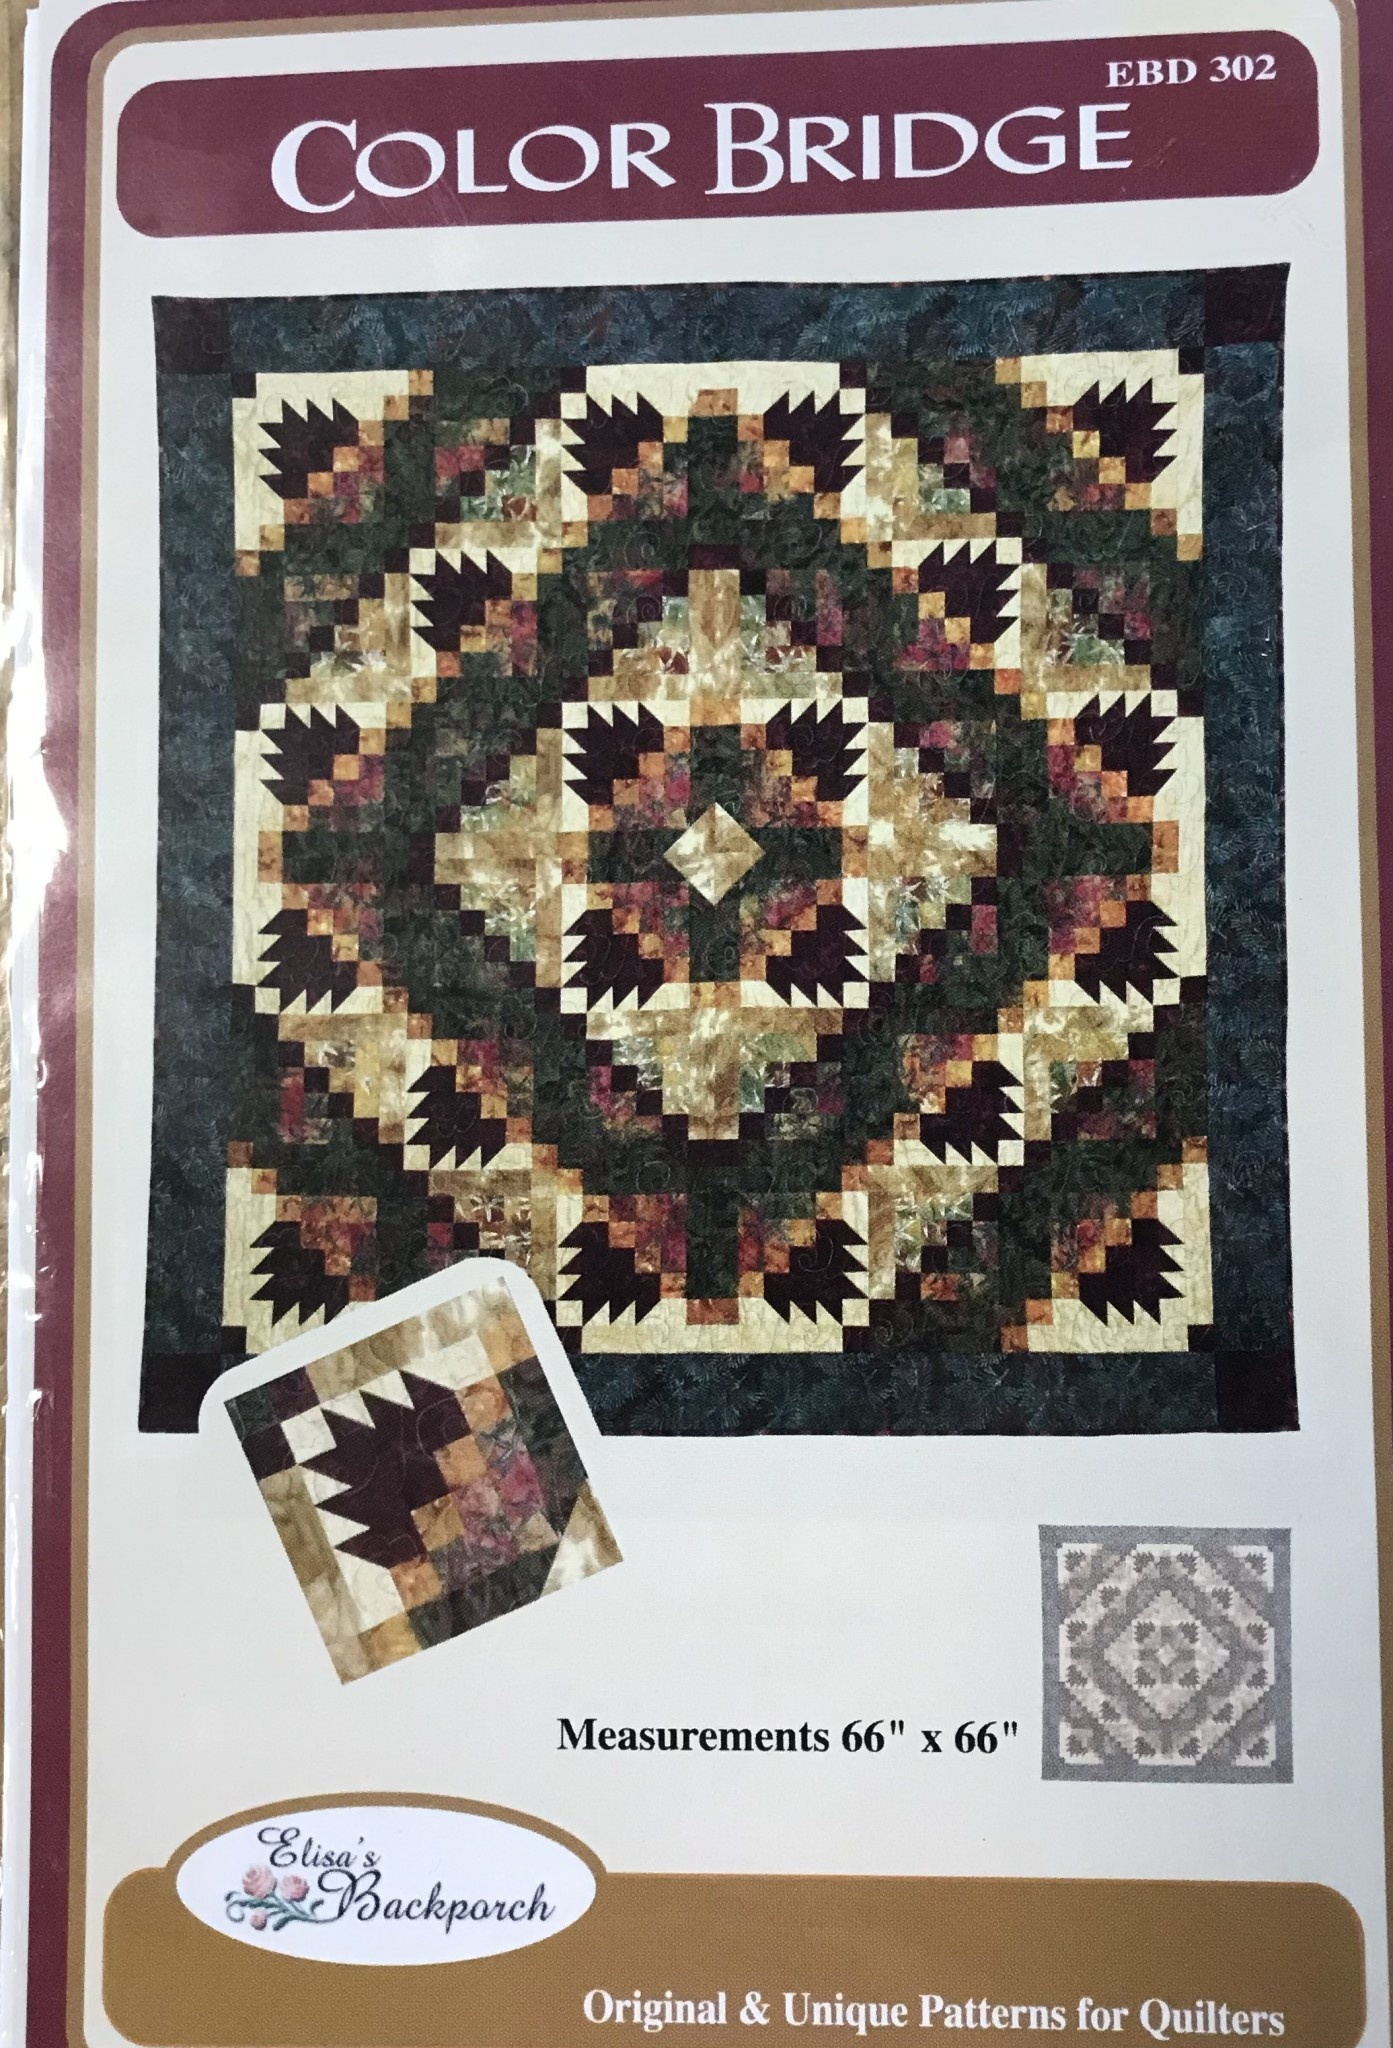 ELISA'S BACKPORCH DESIGNS COLOR BRIDGE PATTERN